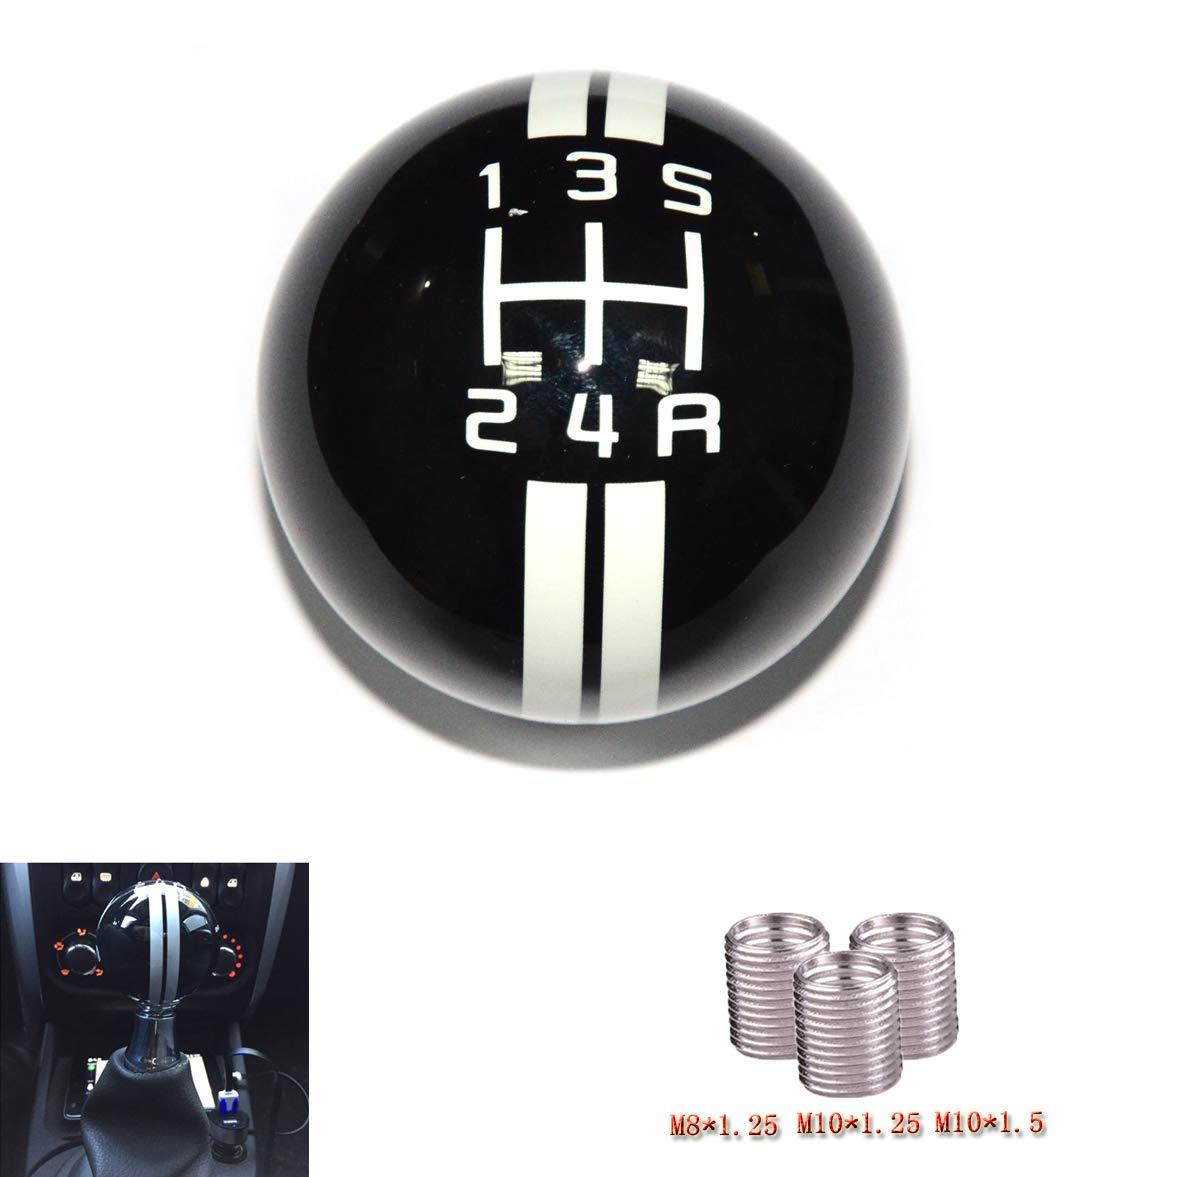 SMKJ 5 Speed Mustang Red line Shift Knob Black Car Gear Stick Shift Shifter Knob Automatic Manual Shifter Knob Suitable for Most Transmission Vehicles